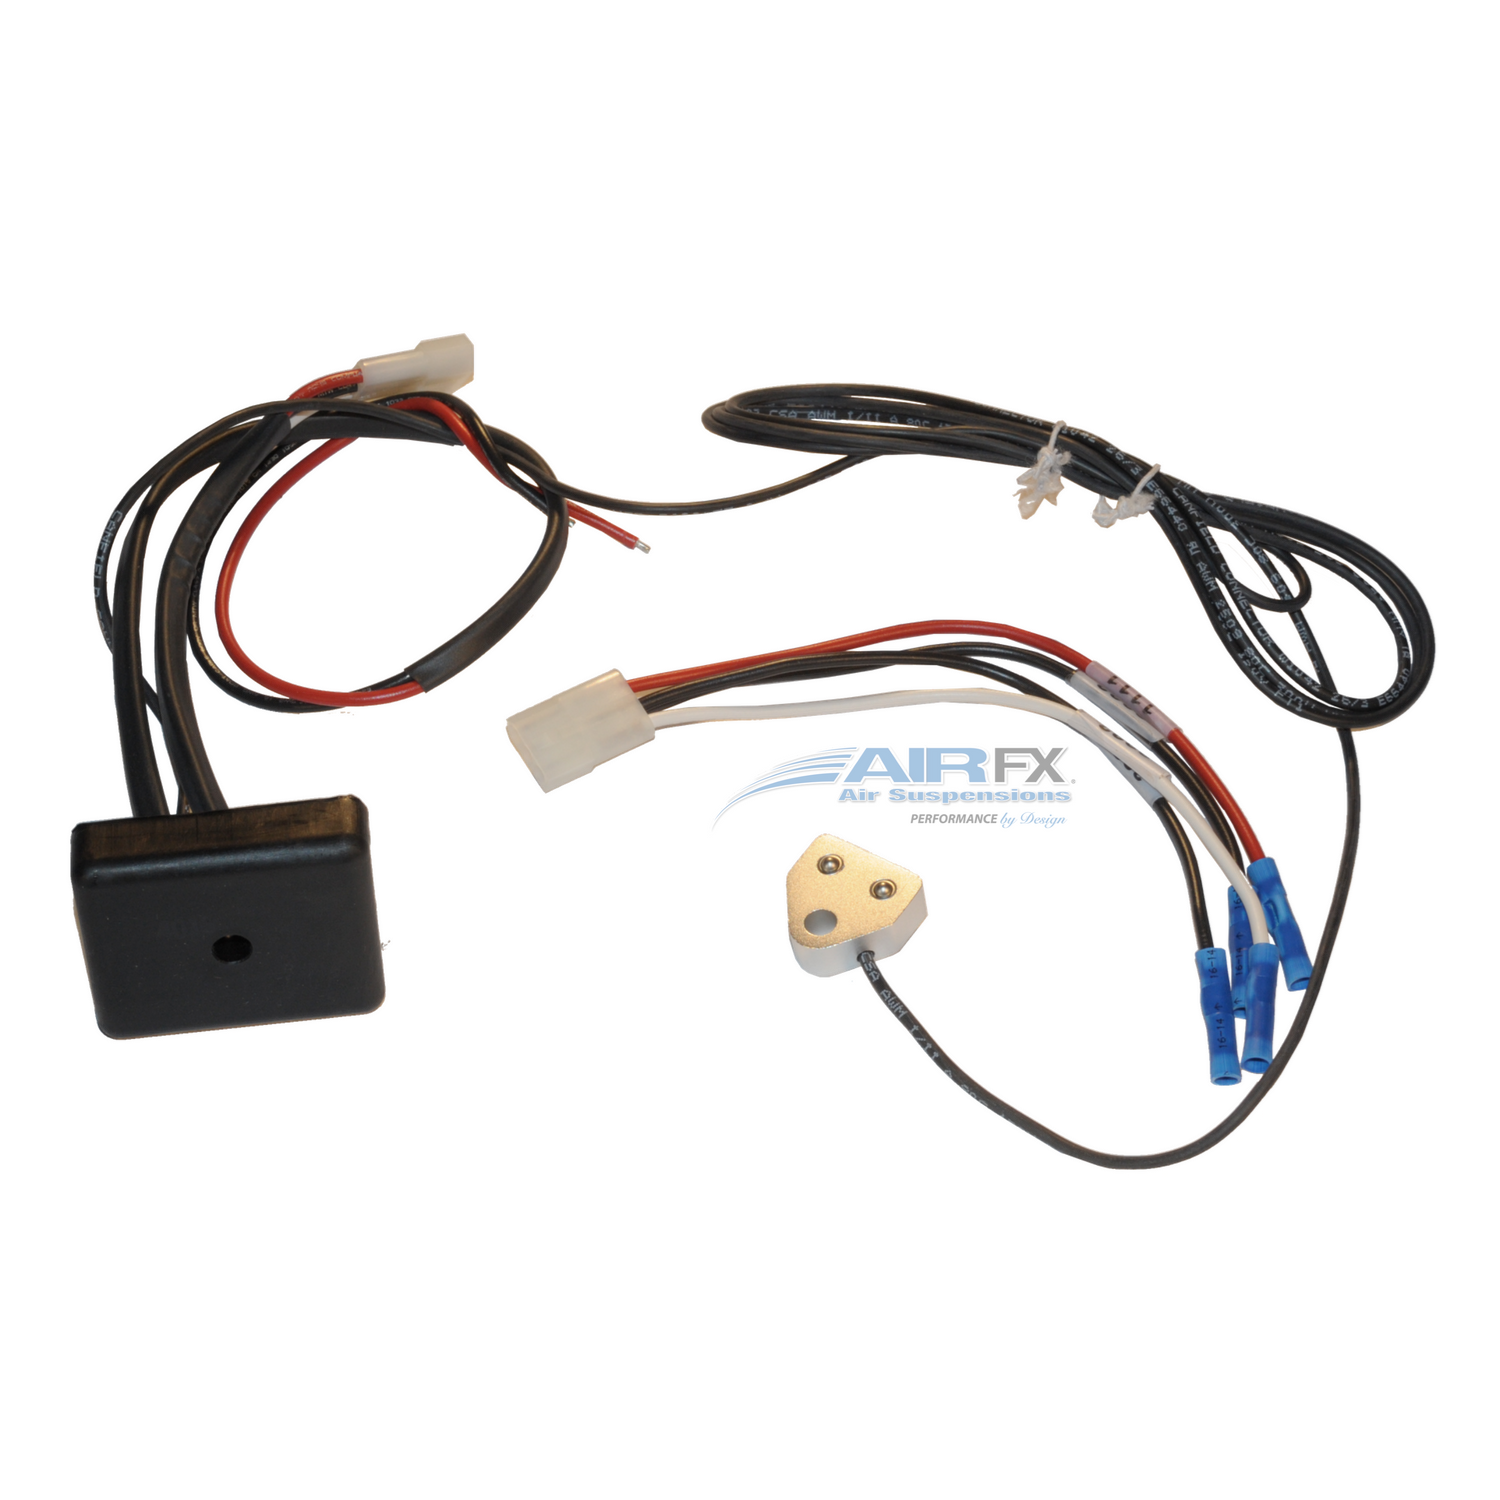 Micro Button Harness, nickel platted (FXA-1010-MB-1) [+$440.00]